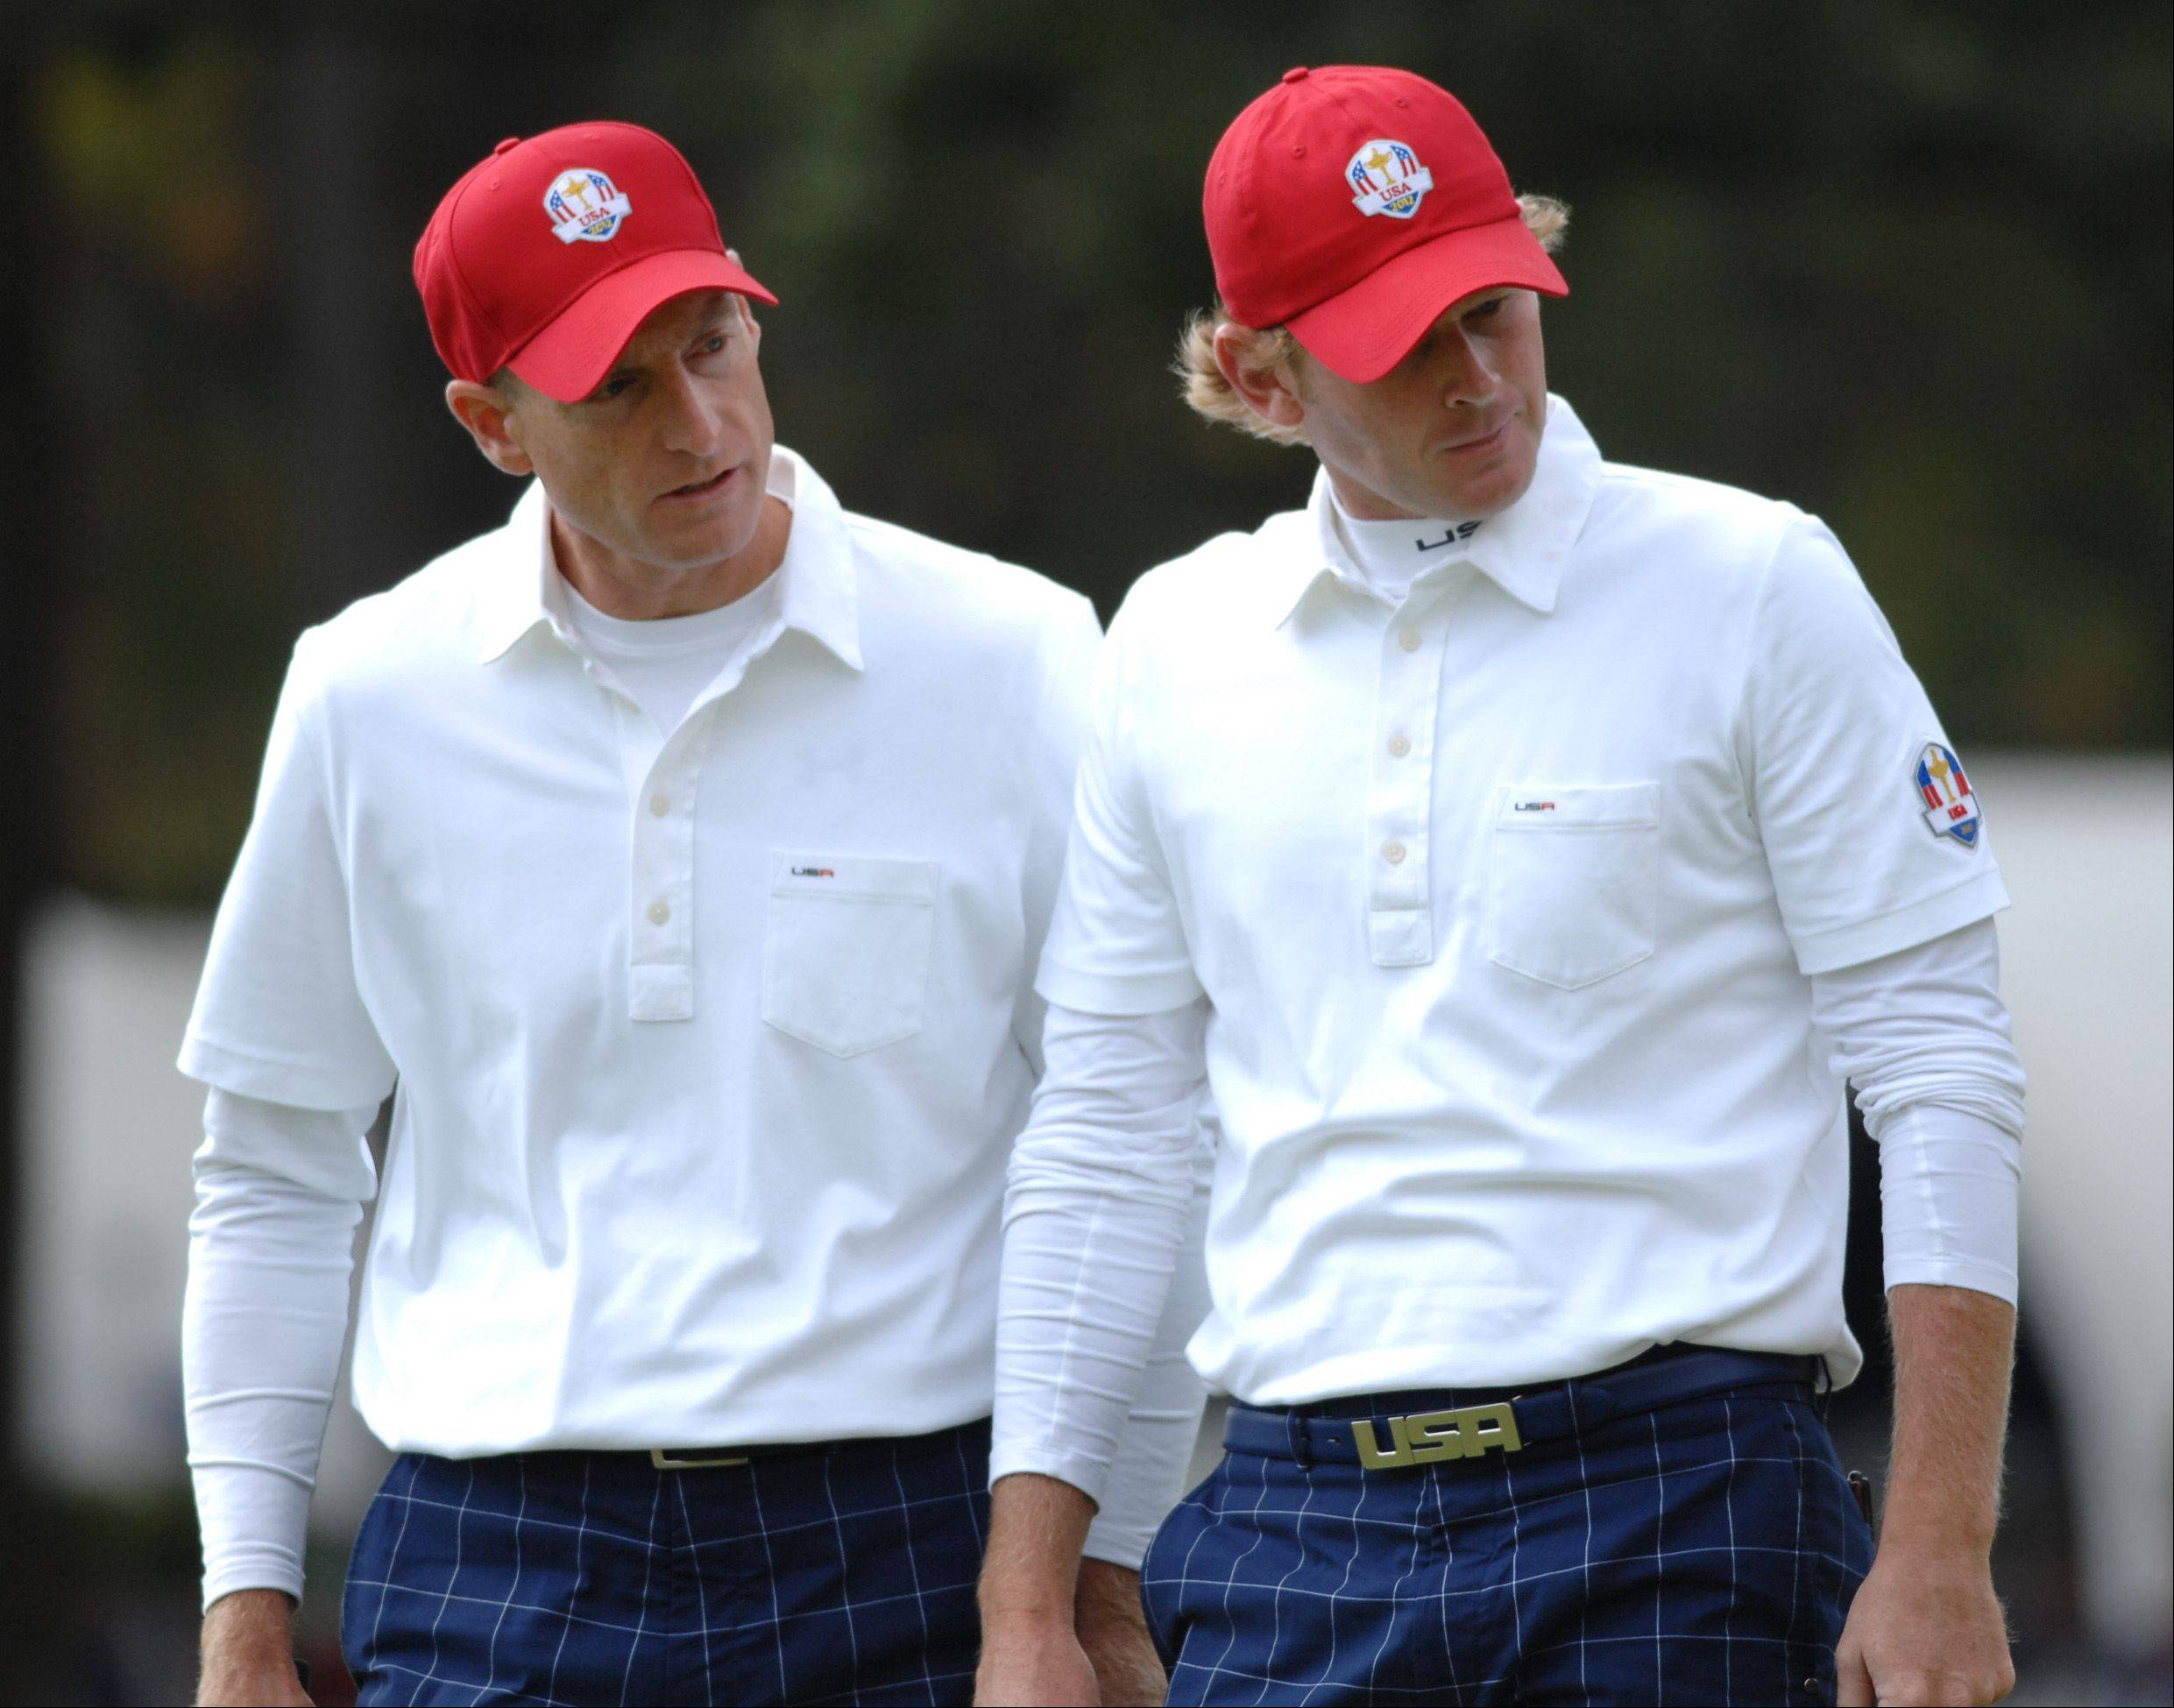 Team USA teammates Jim Furyk, left, and rookie Brandt Snedeker staged a late rally in their foursome match Friday morning at Medinah before falling on the 18th hole.